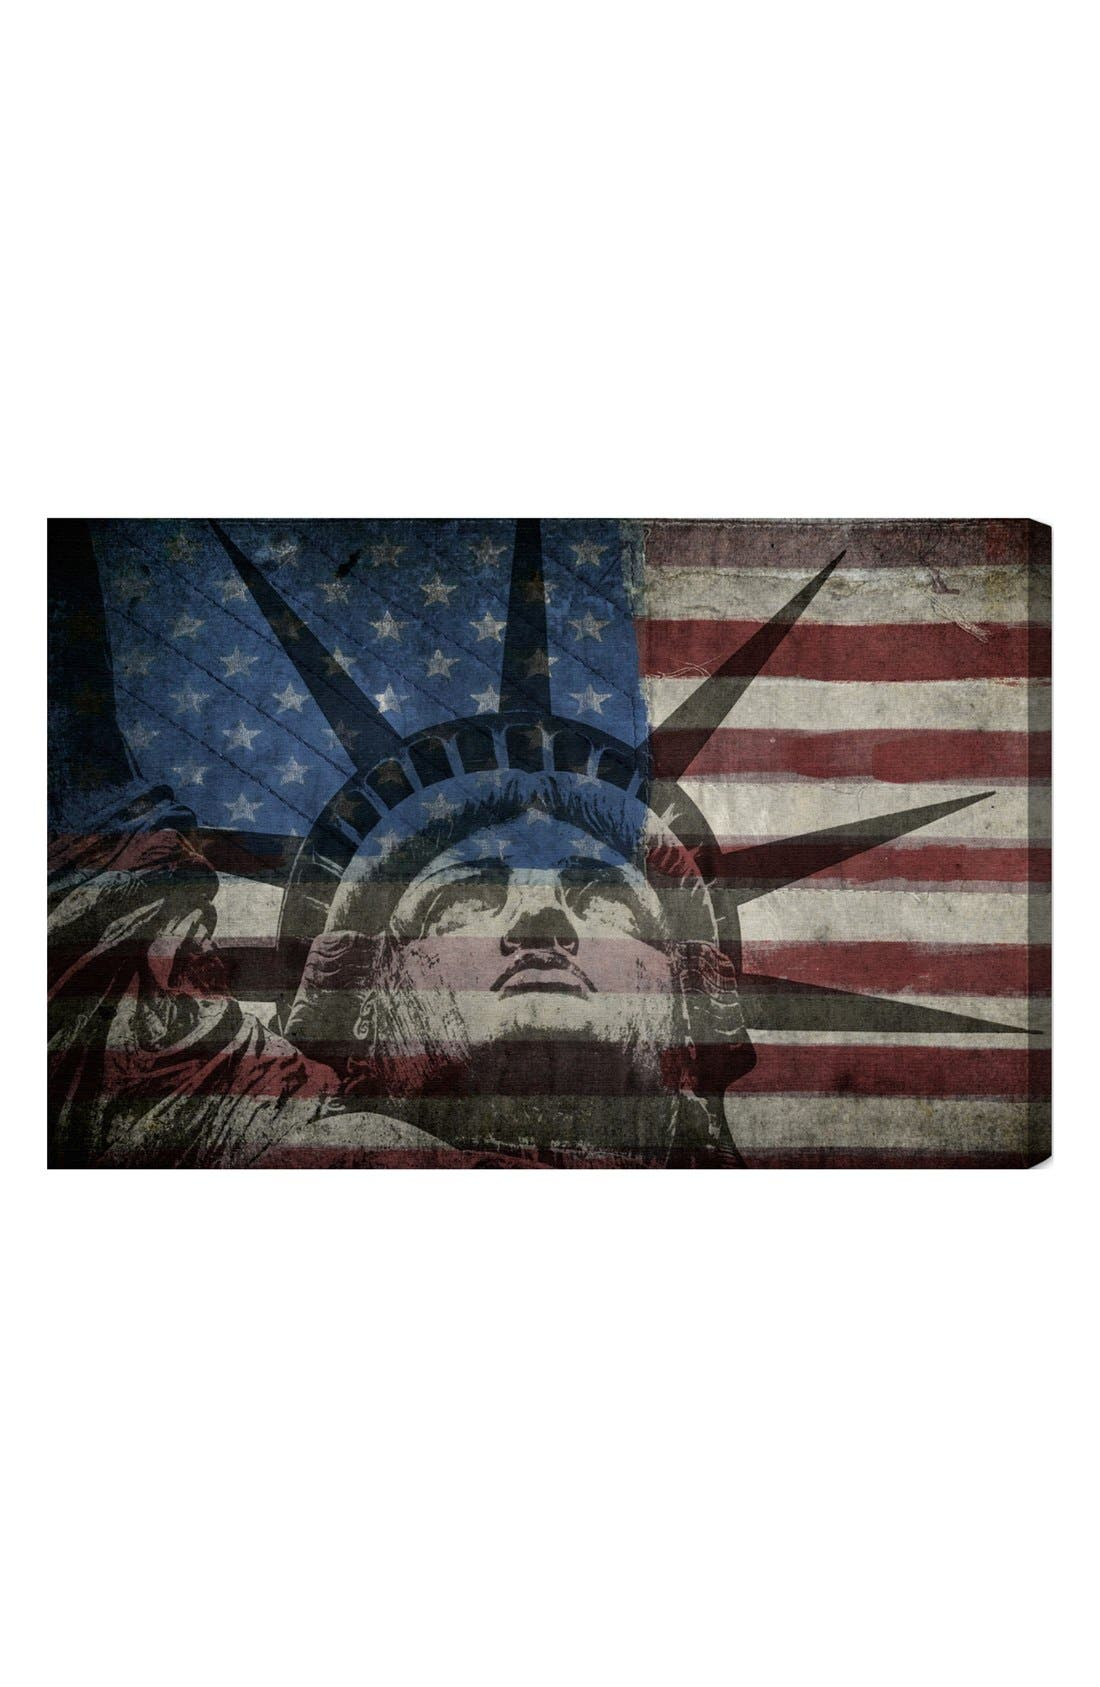 Alternate Image 1 Selected - Oliver Gal 'Statue of Liberty' Wall Art